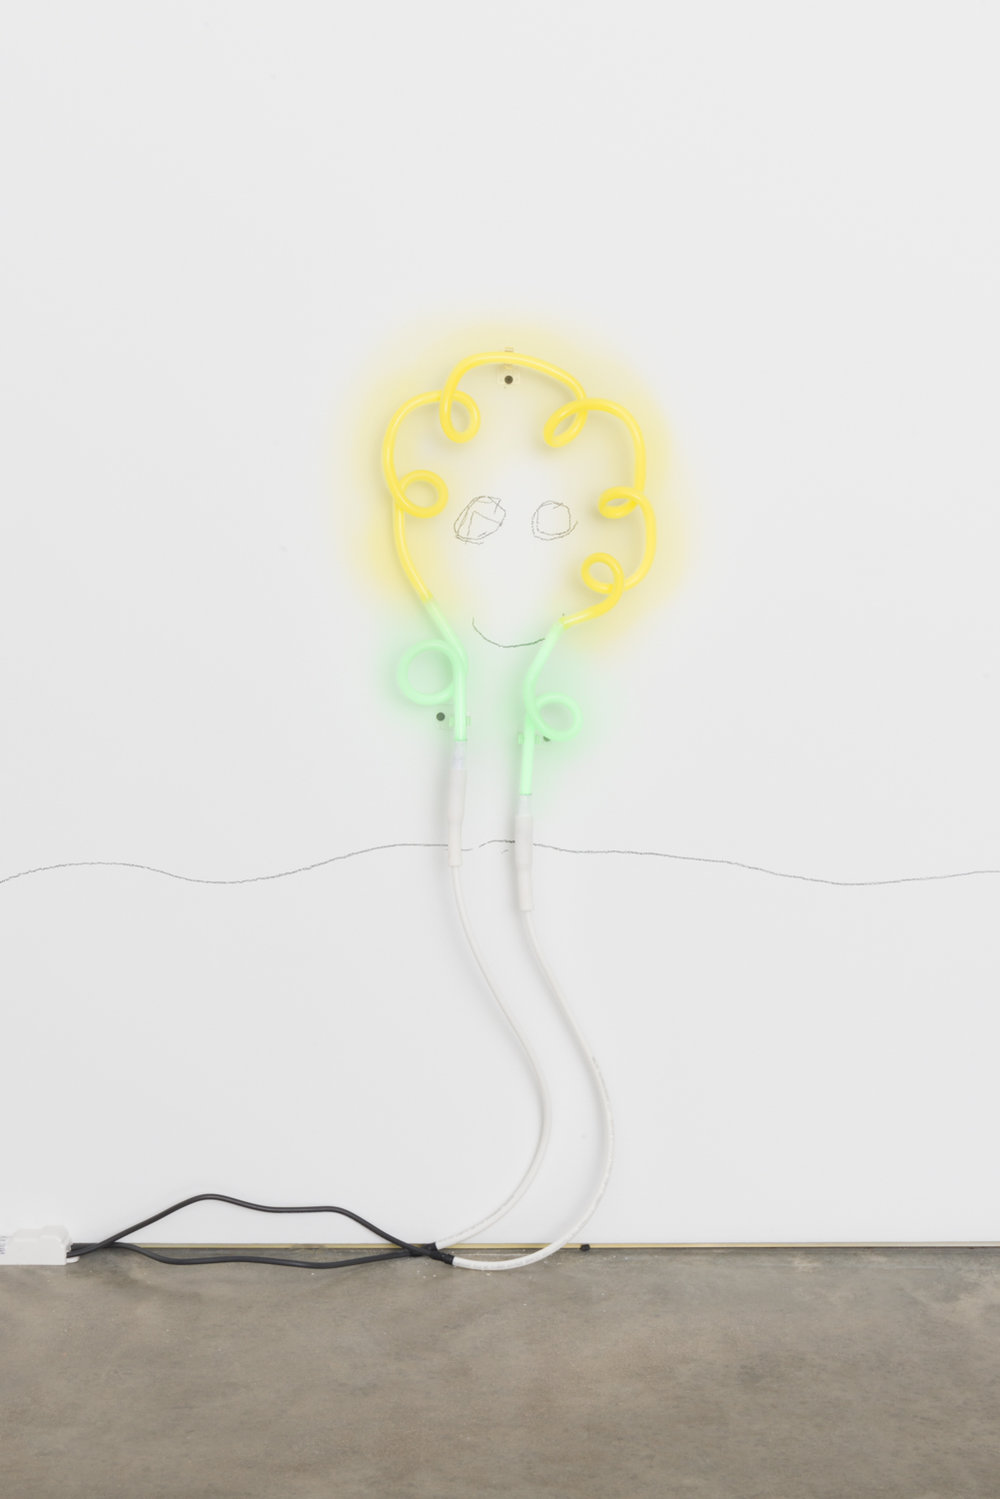 CD Wu Not yet titled (flower) 2016 Neon and pencil 16h x 9w in CDW012